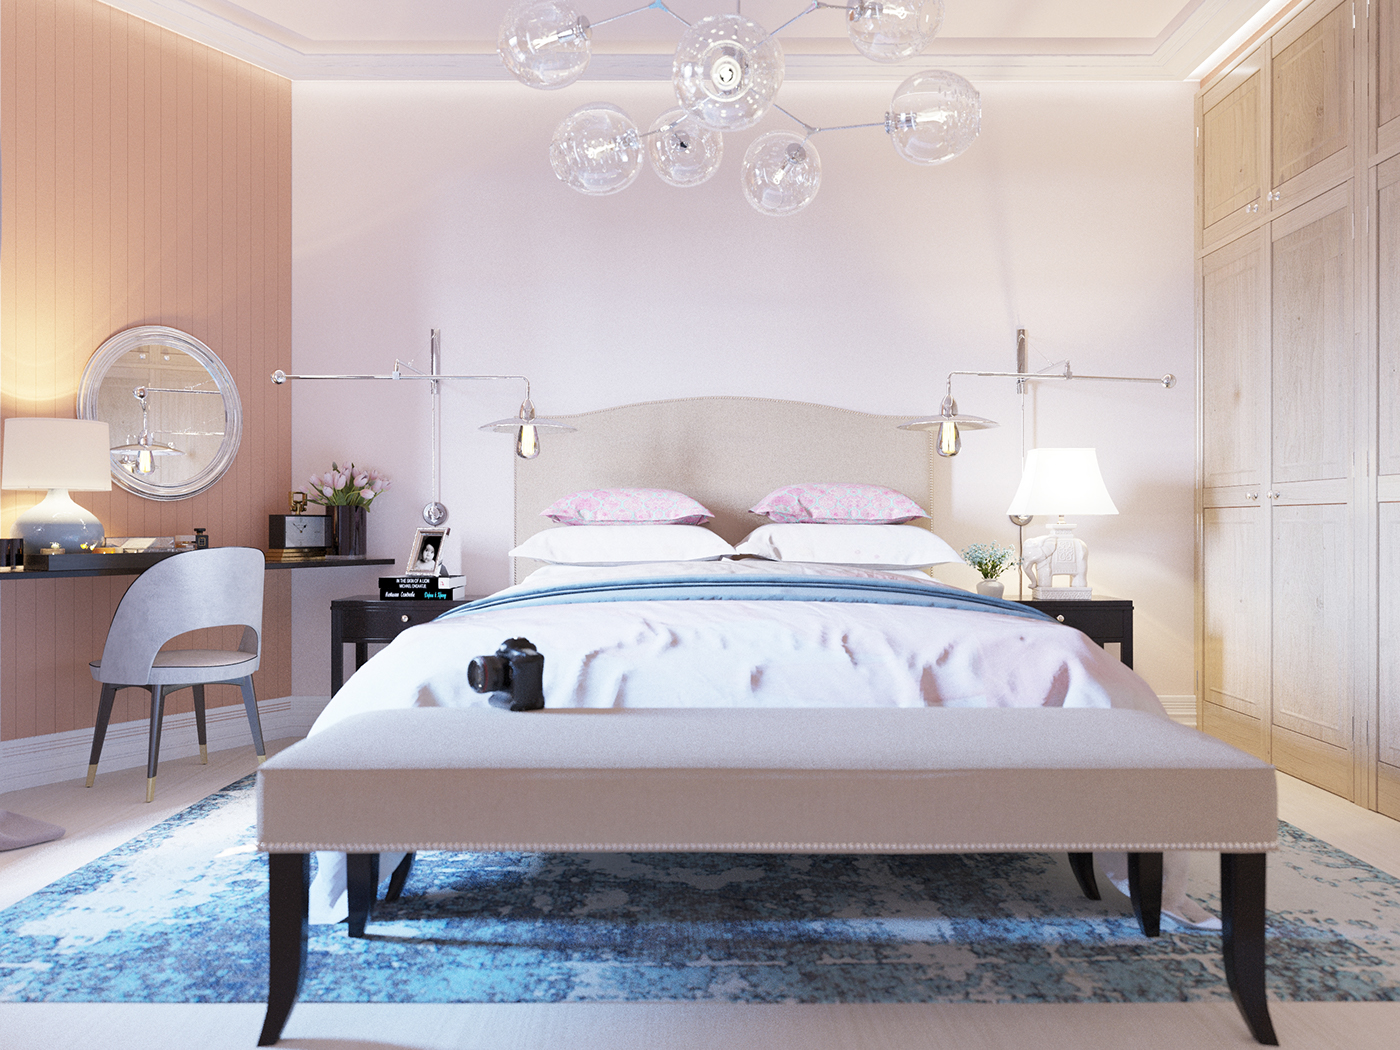 Charming, Fresh and Cosy Modern Interior Design Project! 5 interior design project Charming, Fresh and Cosy Modern Interior Design Project! Charming Fresh and Cosy Modern Interior Design Project 5